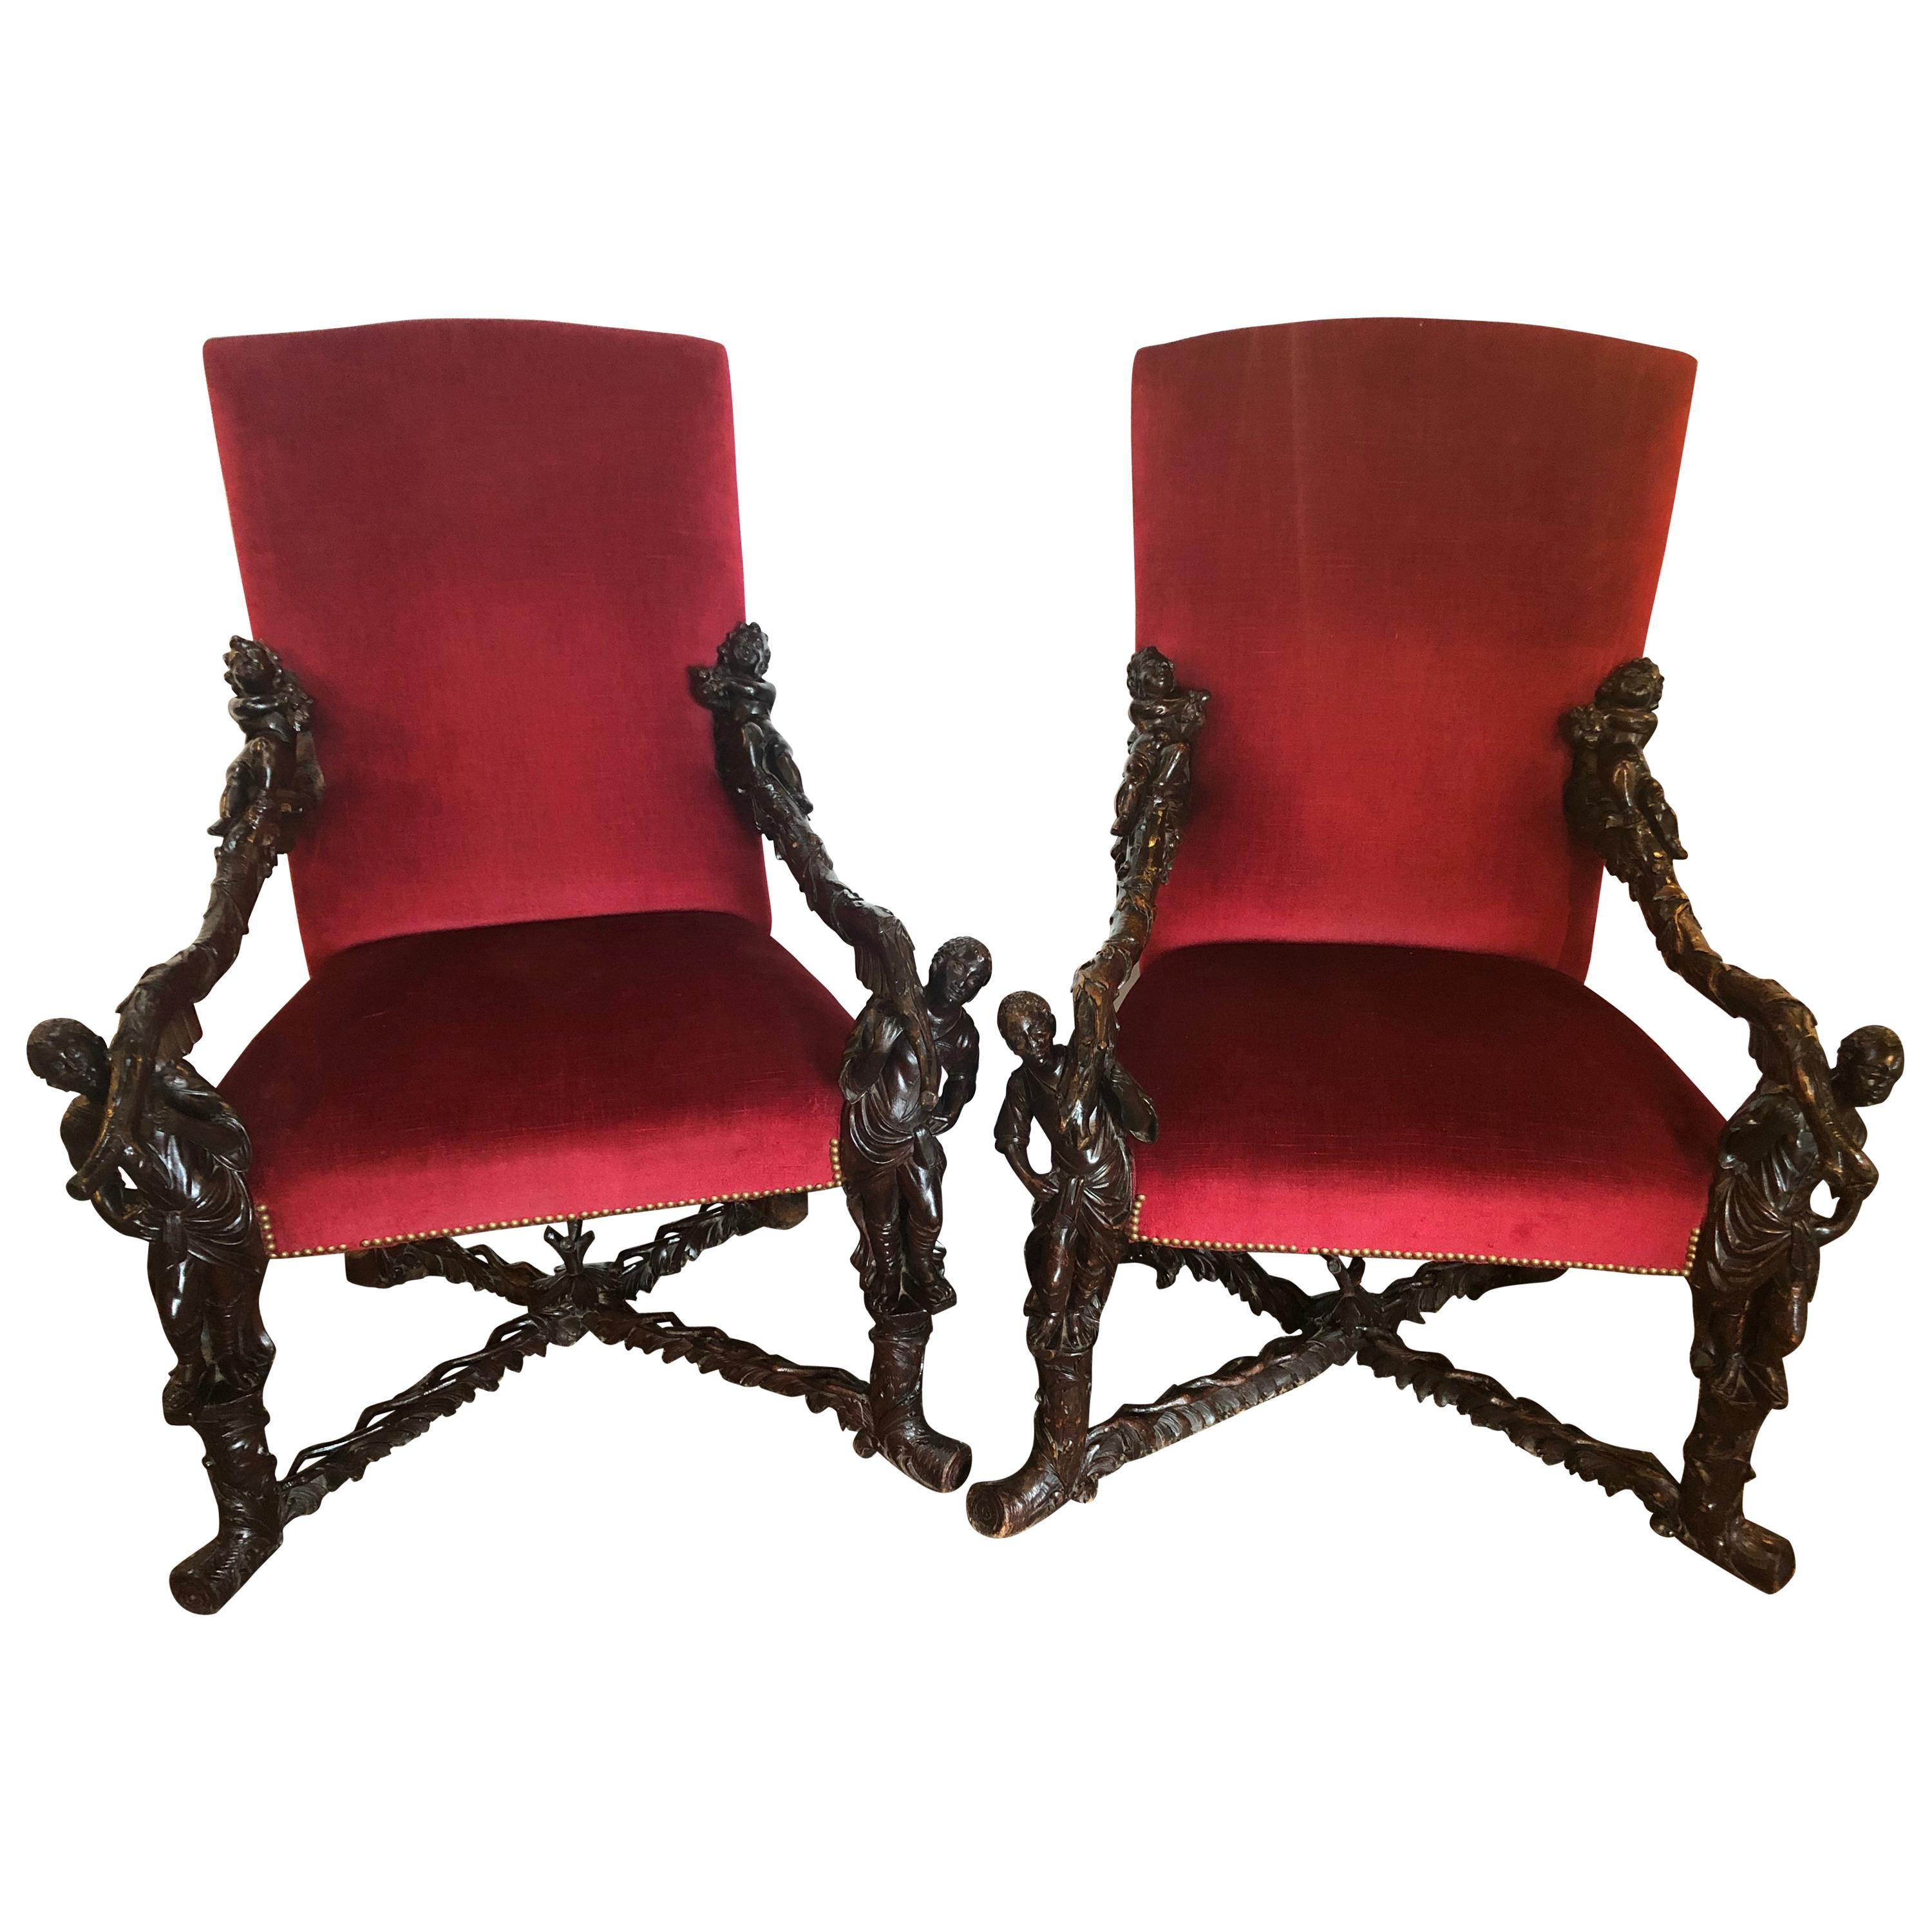 Pair of Italian 19th Century Baroque Carved Arm Throne Chairs, Figural Carvings